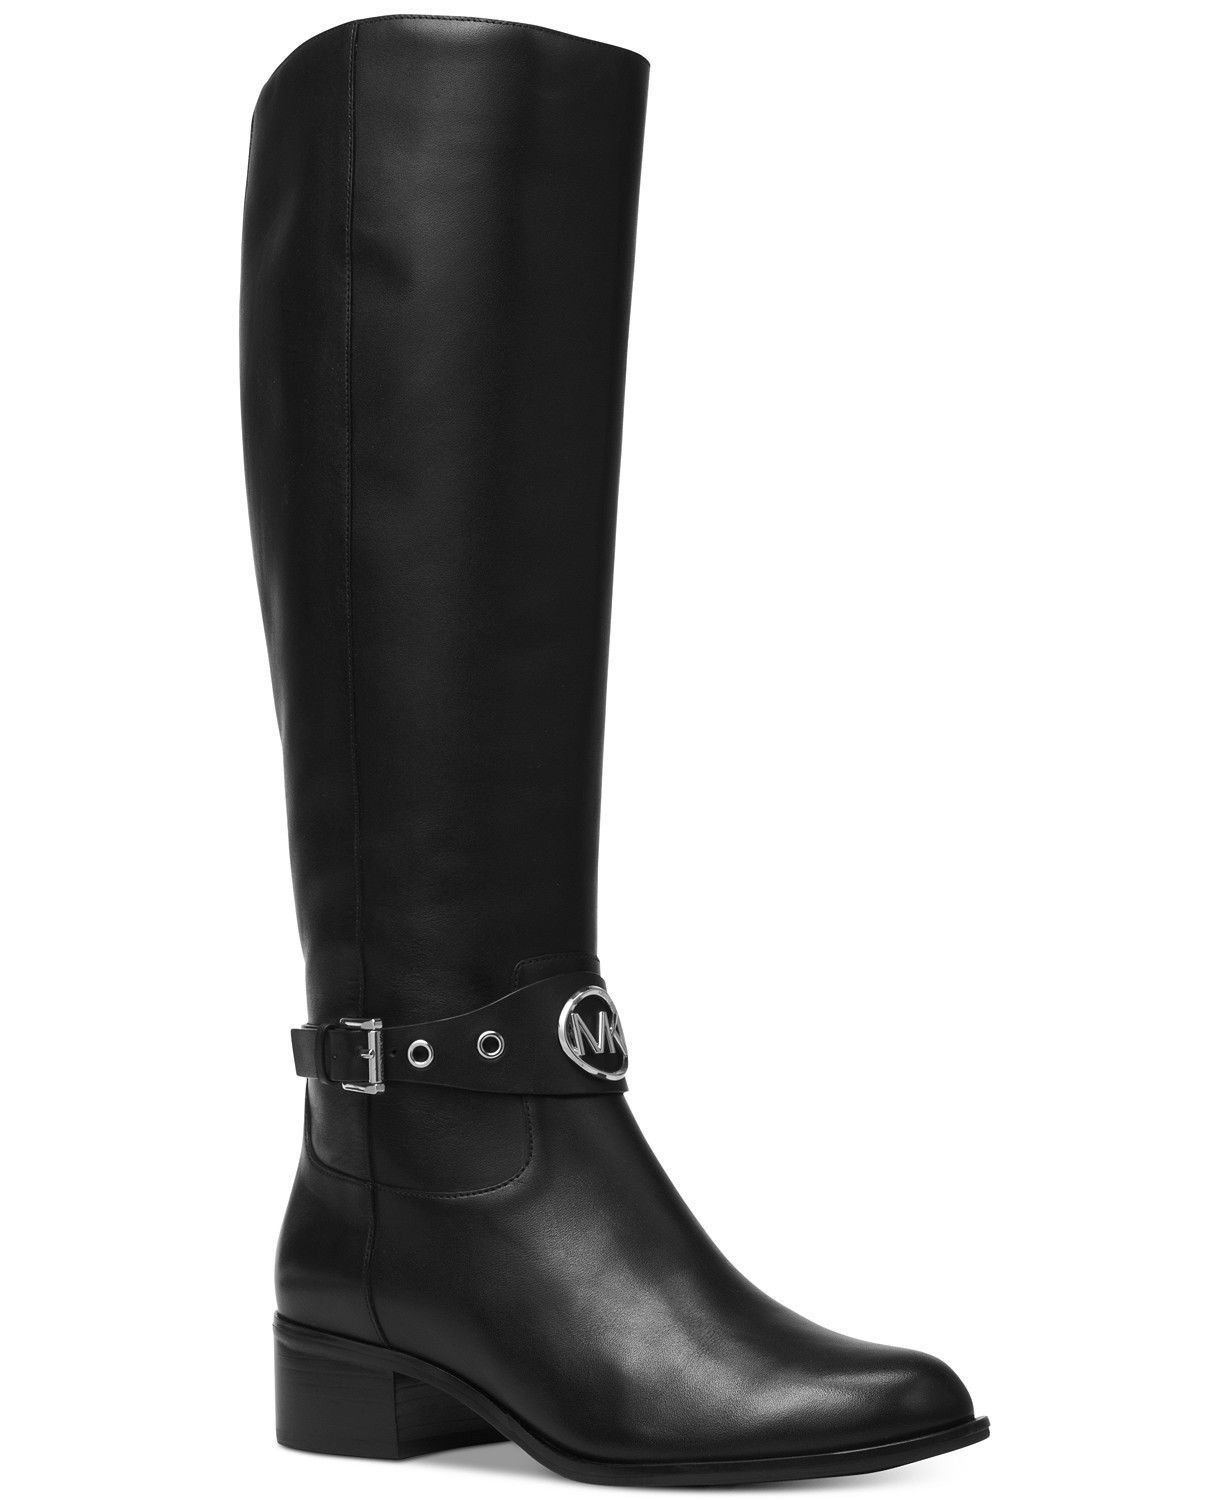 Michael Kors MK Women's Knee High Leather Tall Heather Riding Boots Black